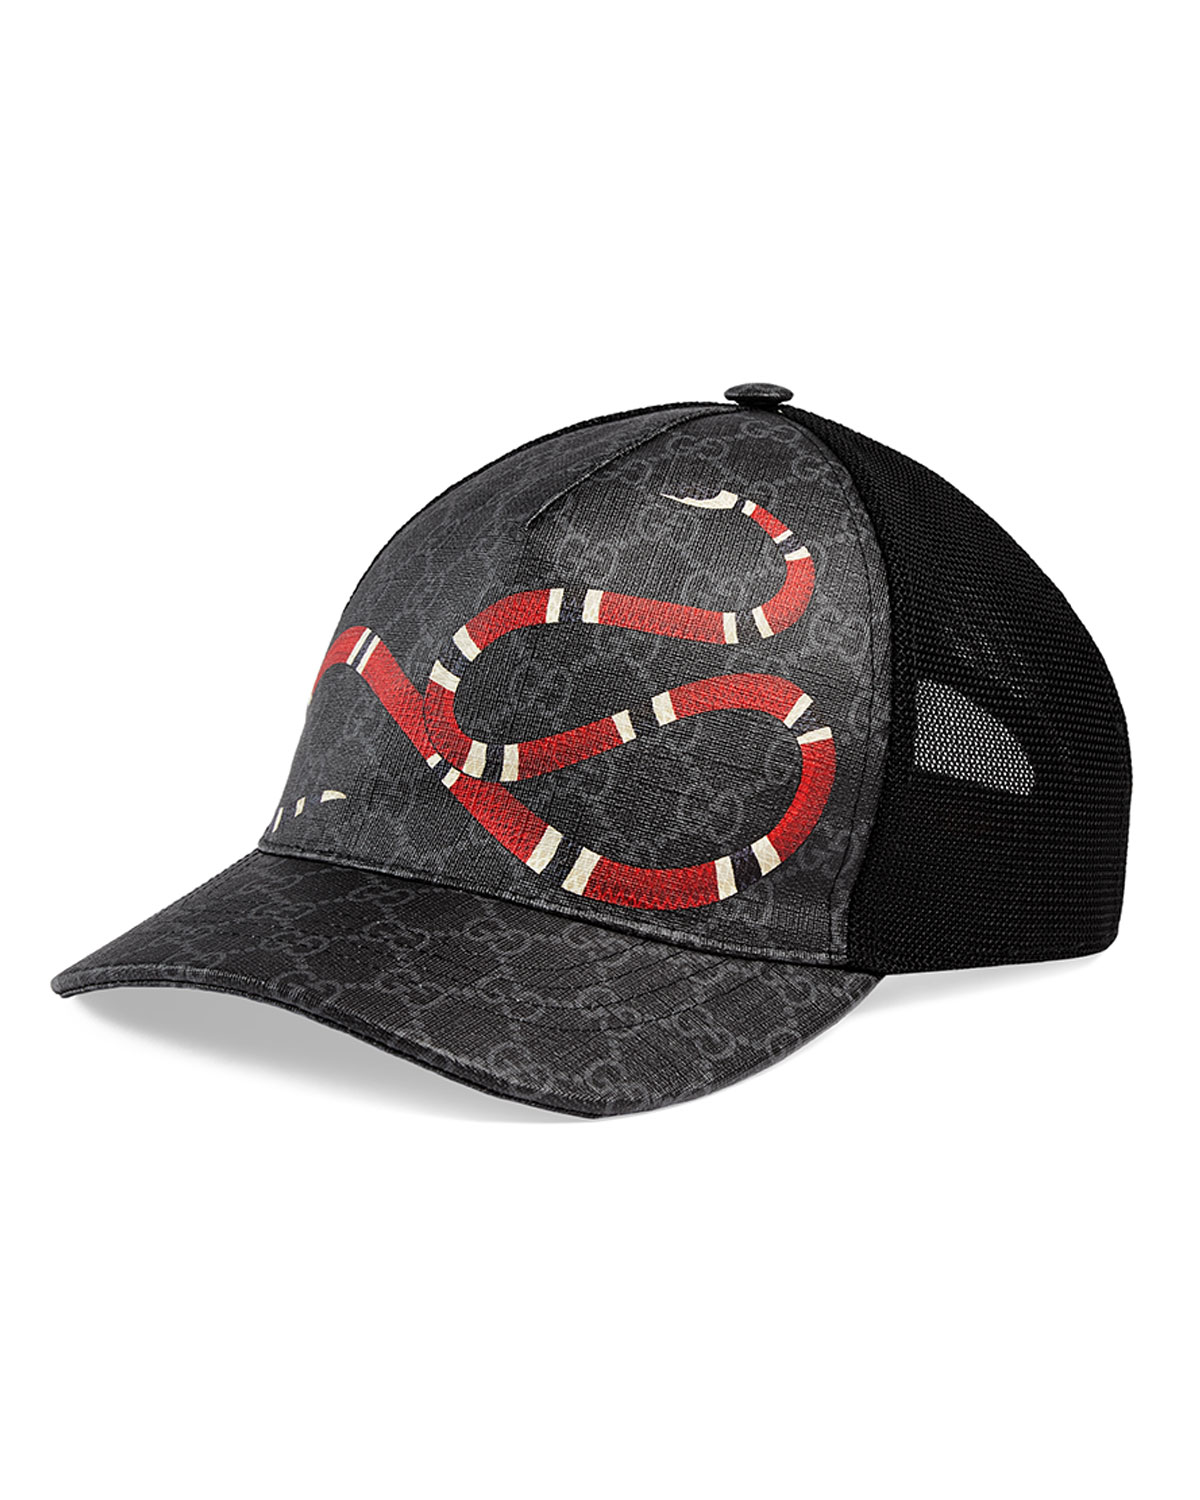 539532317e2c0 Gucci Men s King Snake GG Supreme Baseball Cap